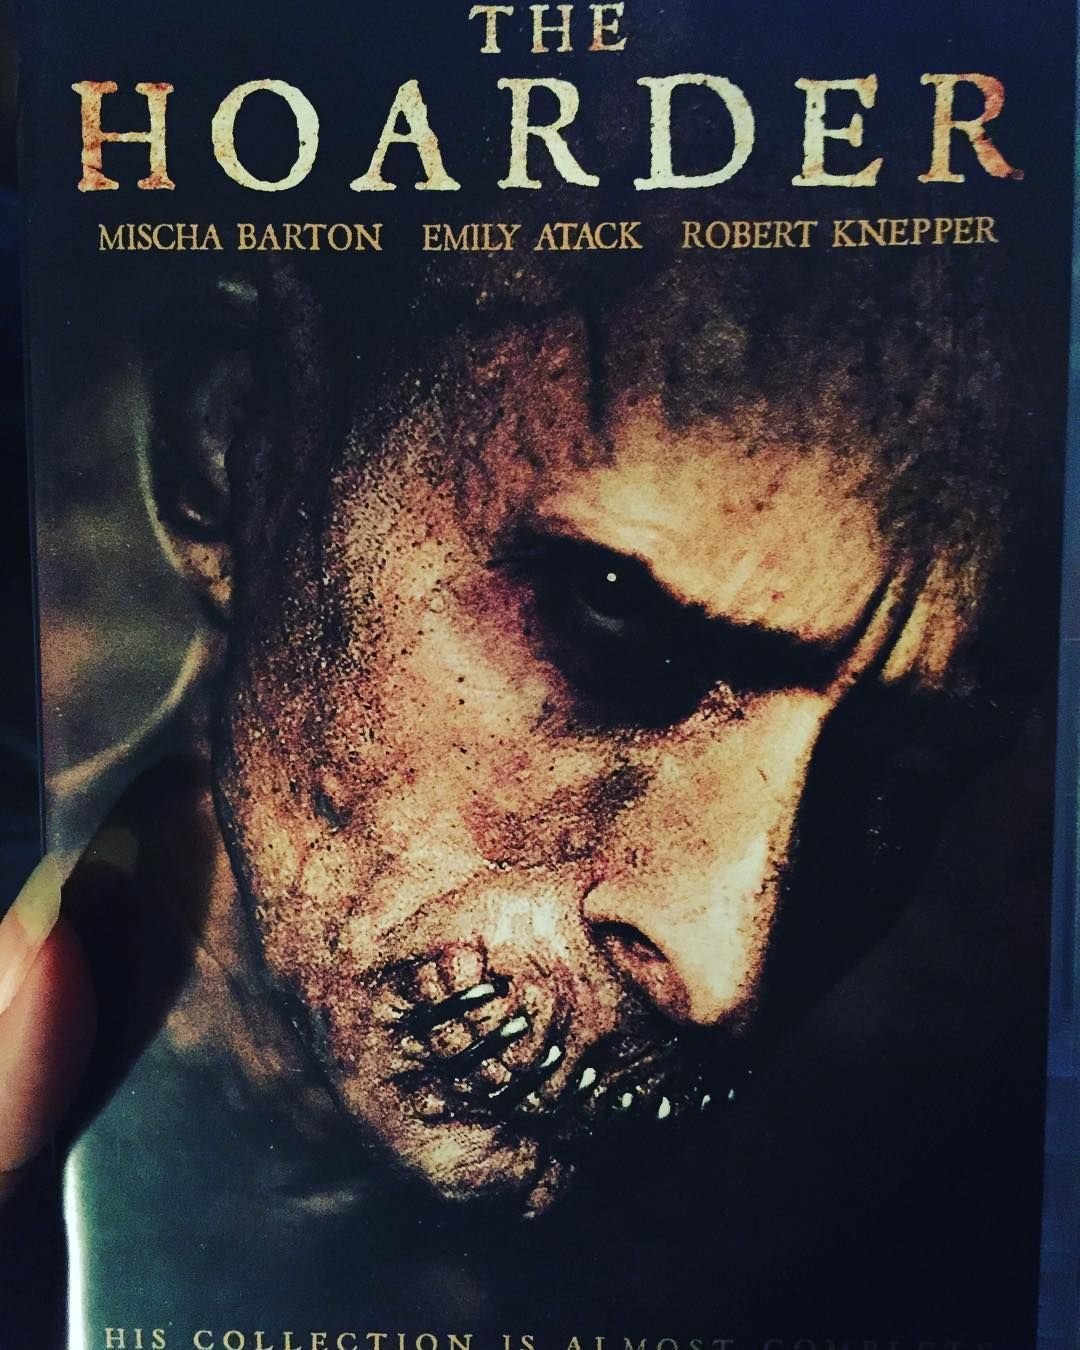 The Hoarder is a 2014 movie about terrifying secrets kept